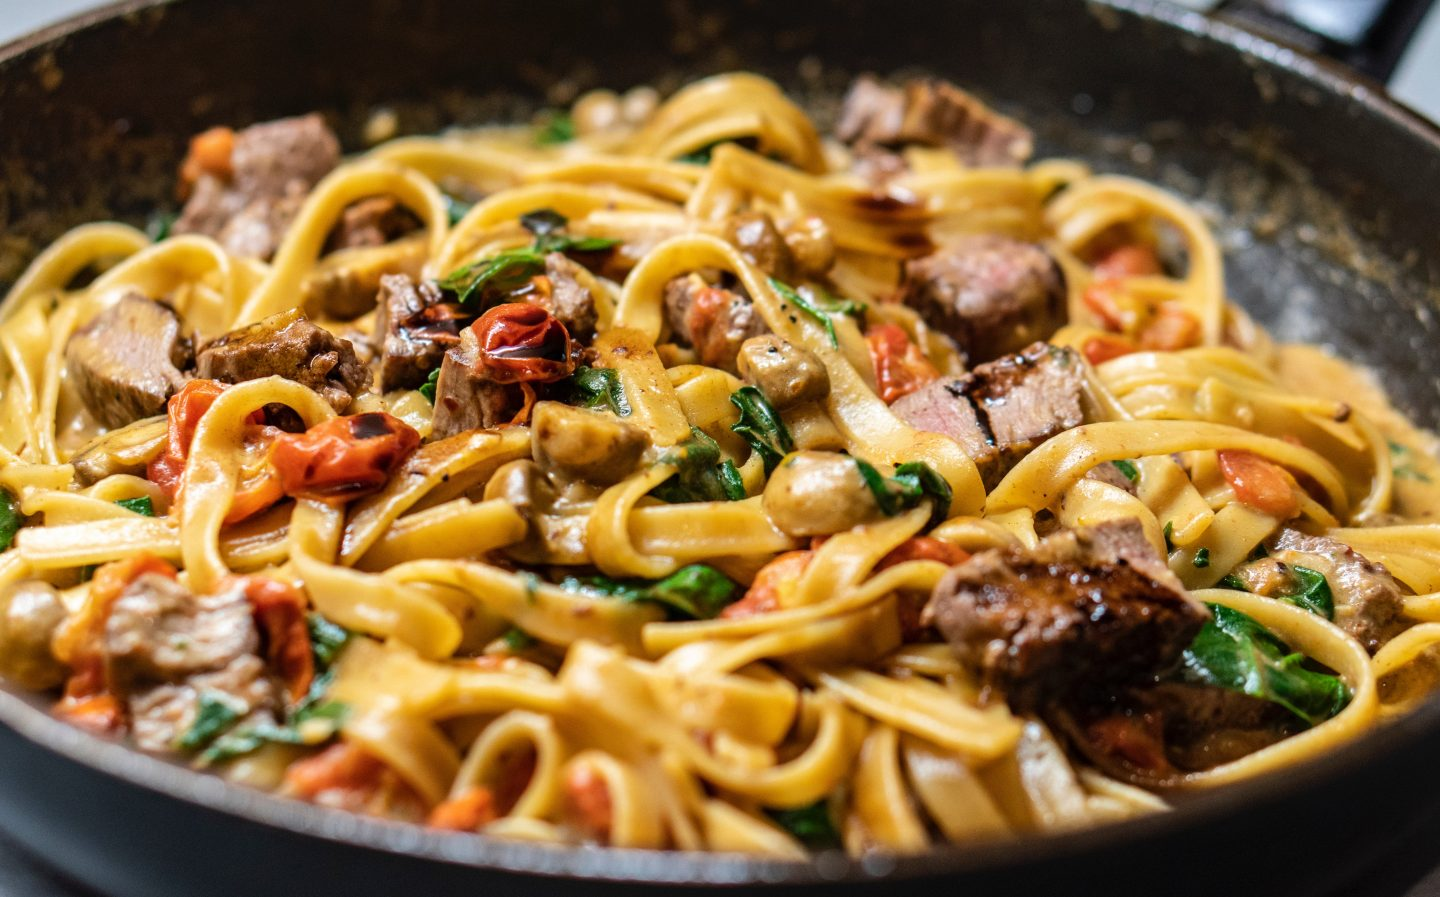 Best foodie subscription boxes: a close up of a pasta dish cooking in a frying pan